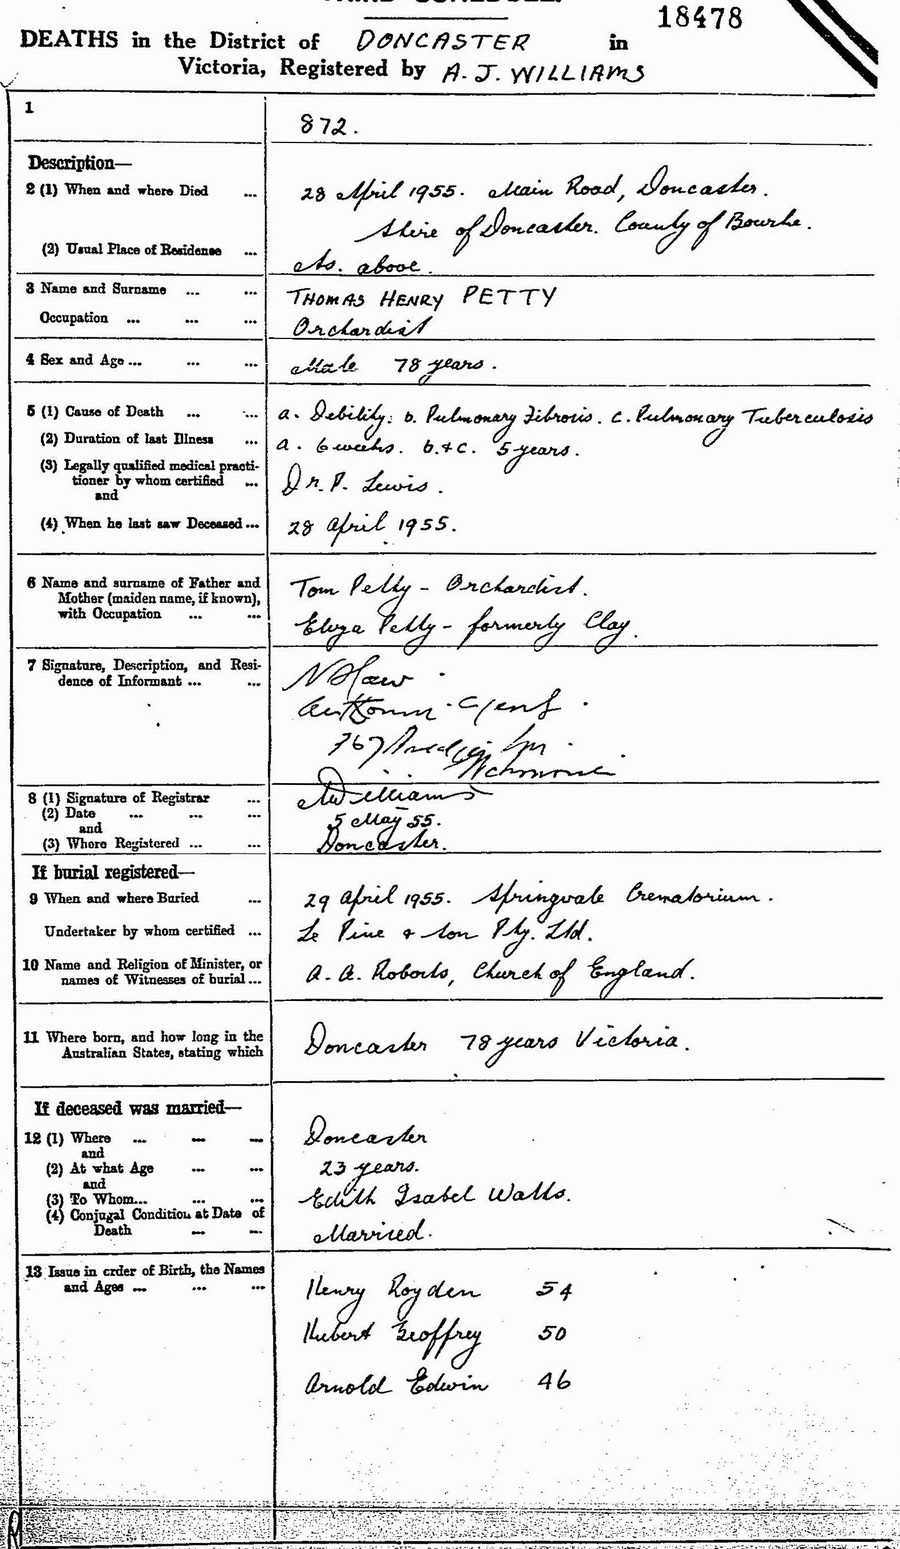 Thomas Henry Petty death certificate